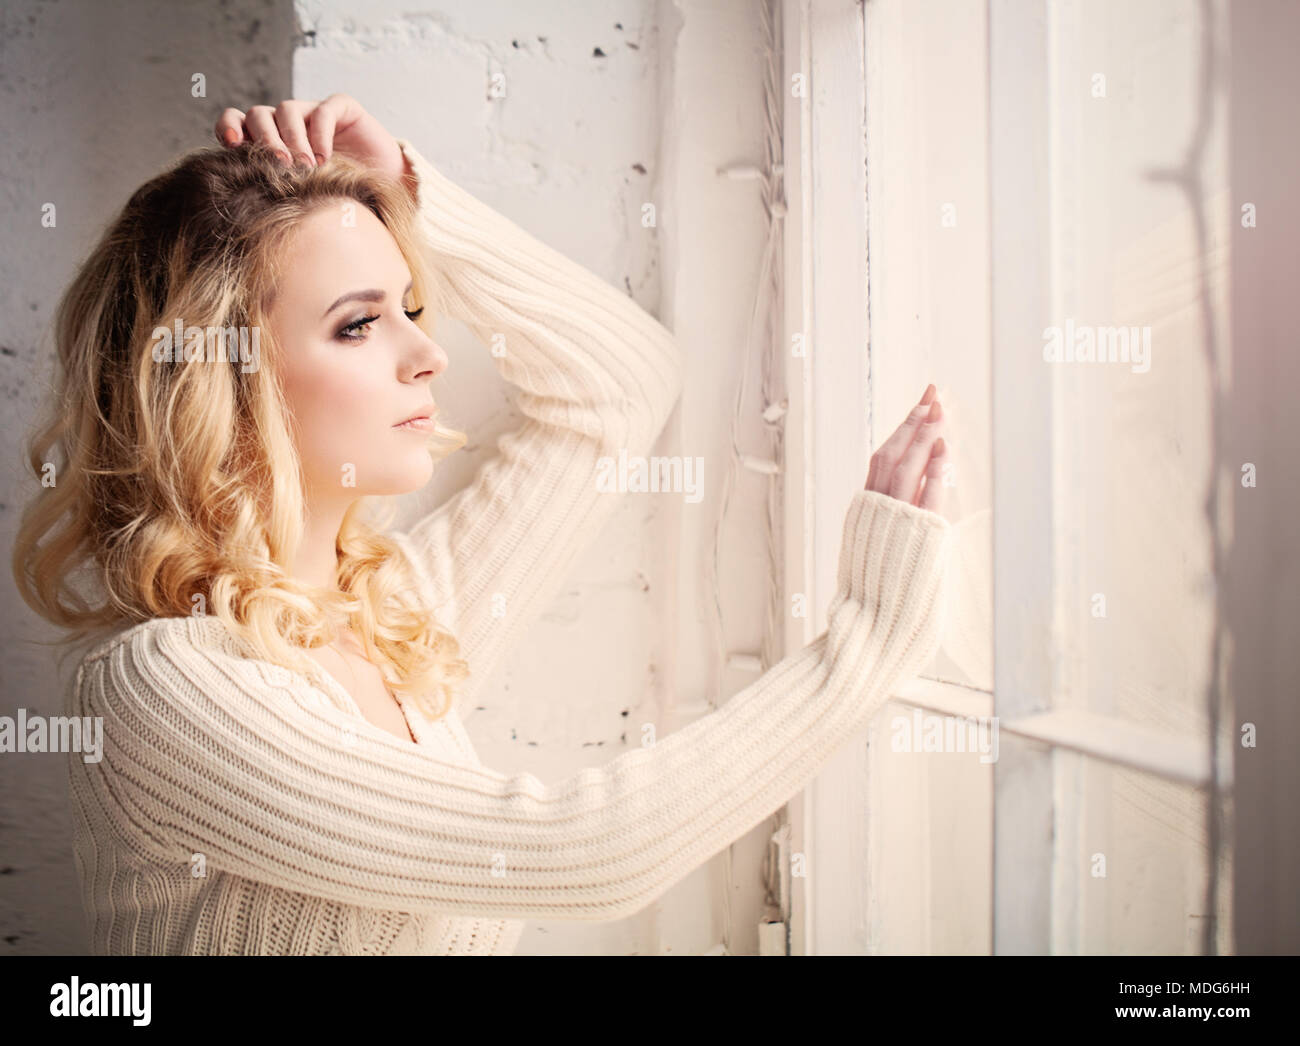 Blonde Woman Looks out the Window and Worries - Stock Image